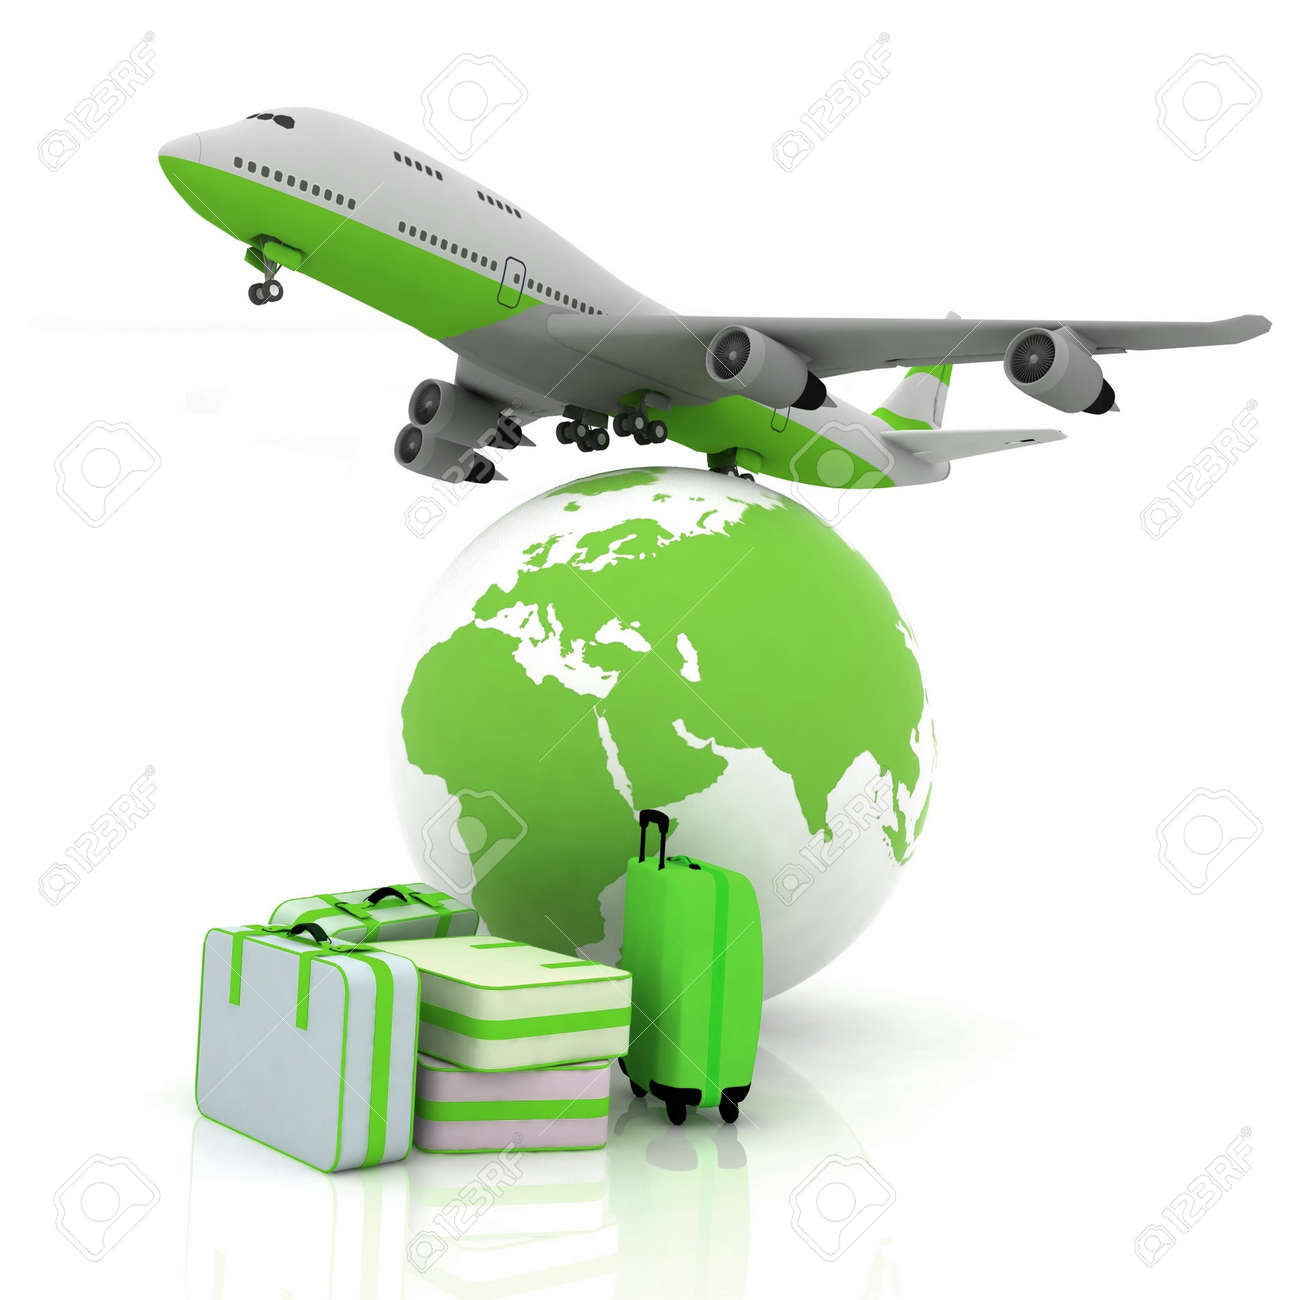 airline industry stock photos royalty free airline industry